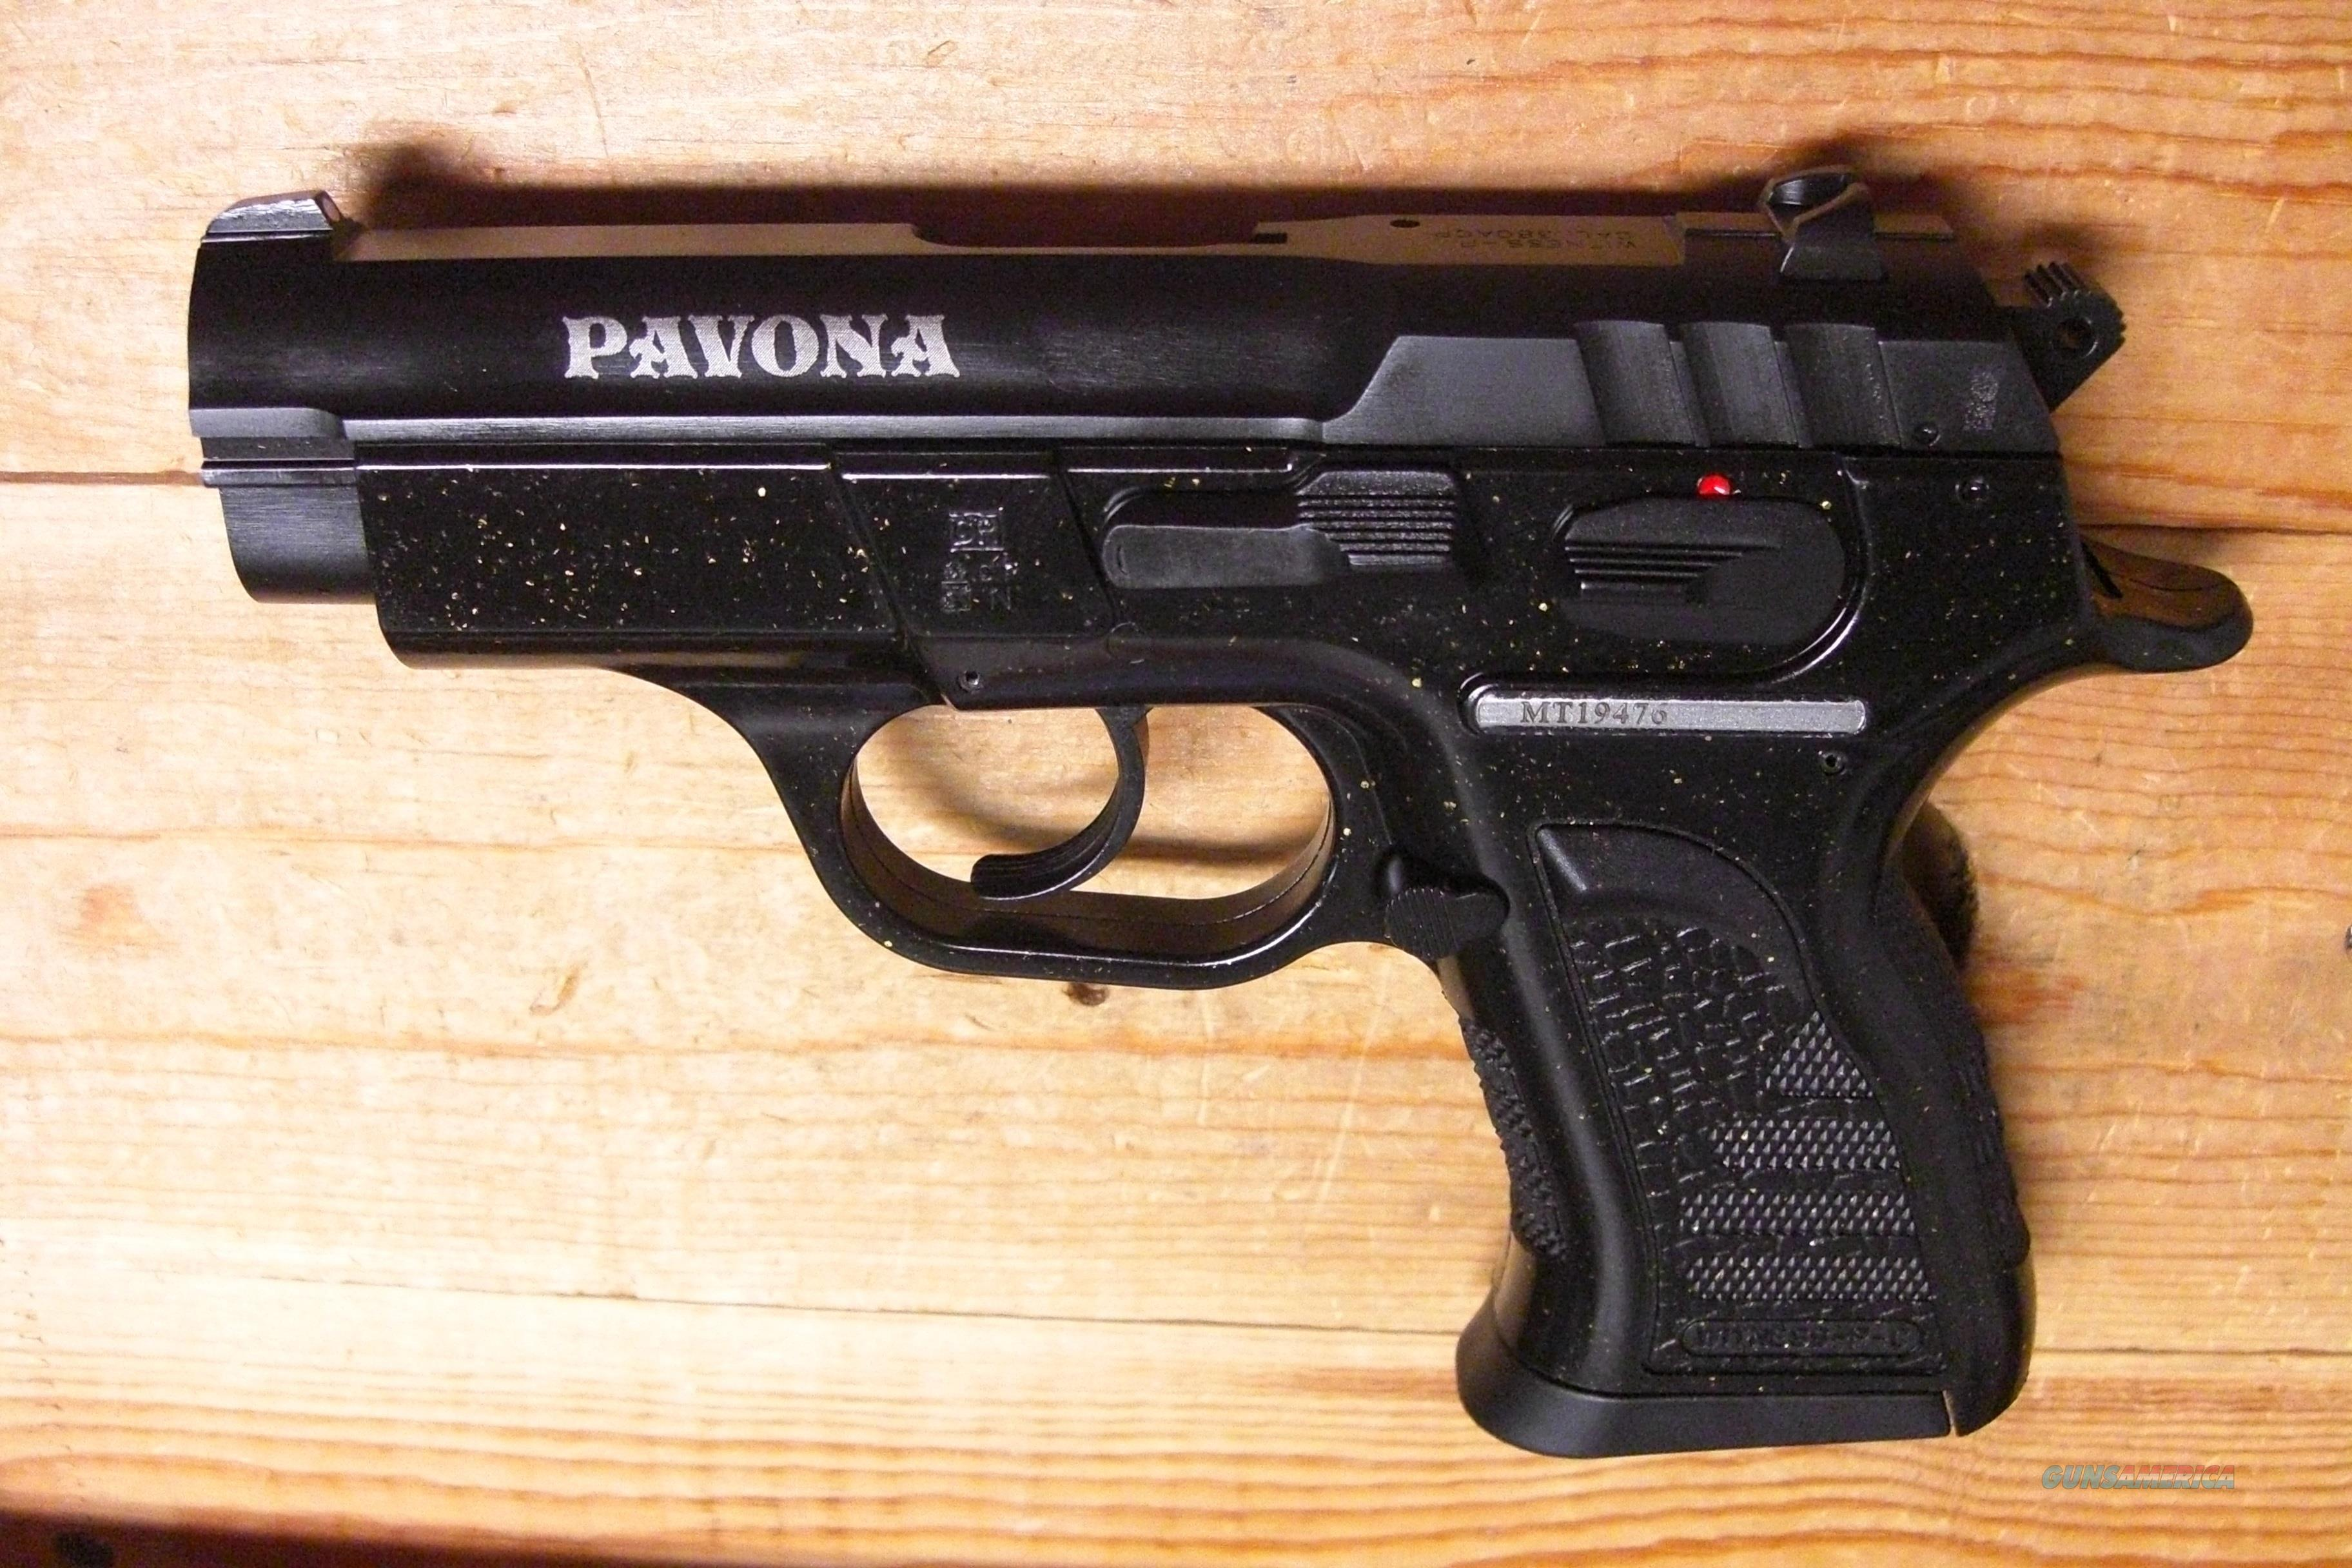 EAA/Tanfoglio Pavana Witness-P  w/black & gold speckled frame  Guns > Pistols > EAA Pistols > Other